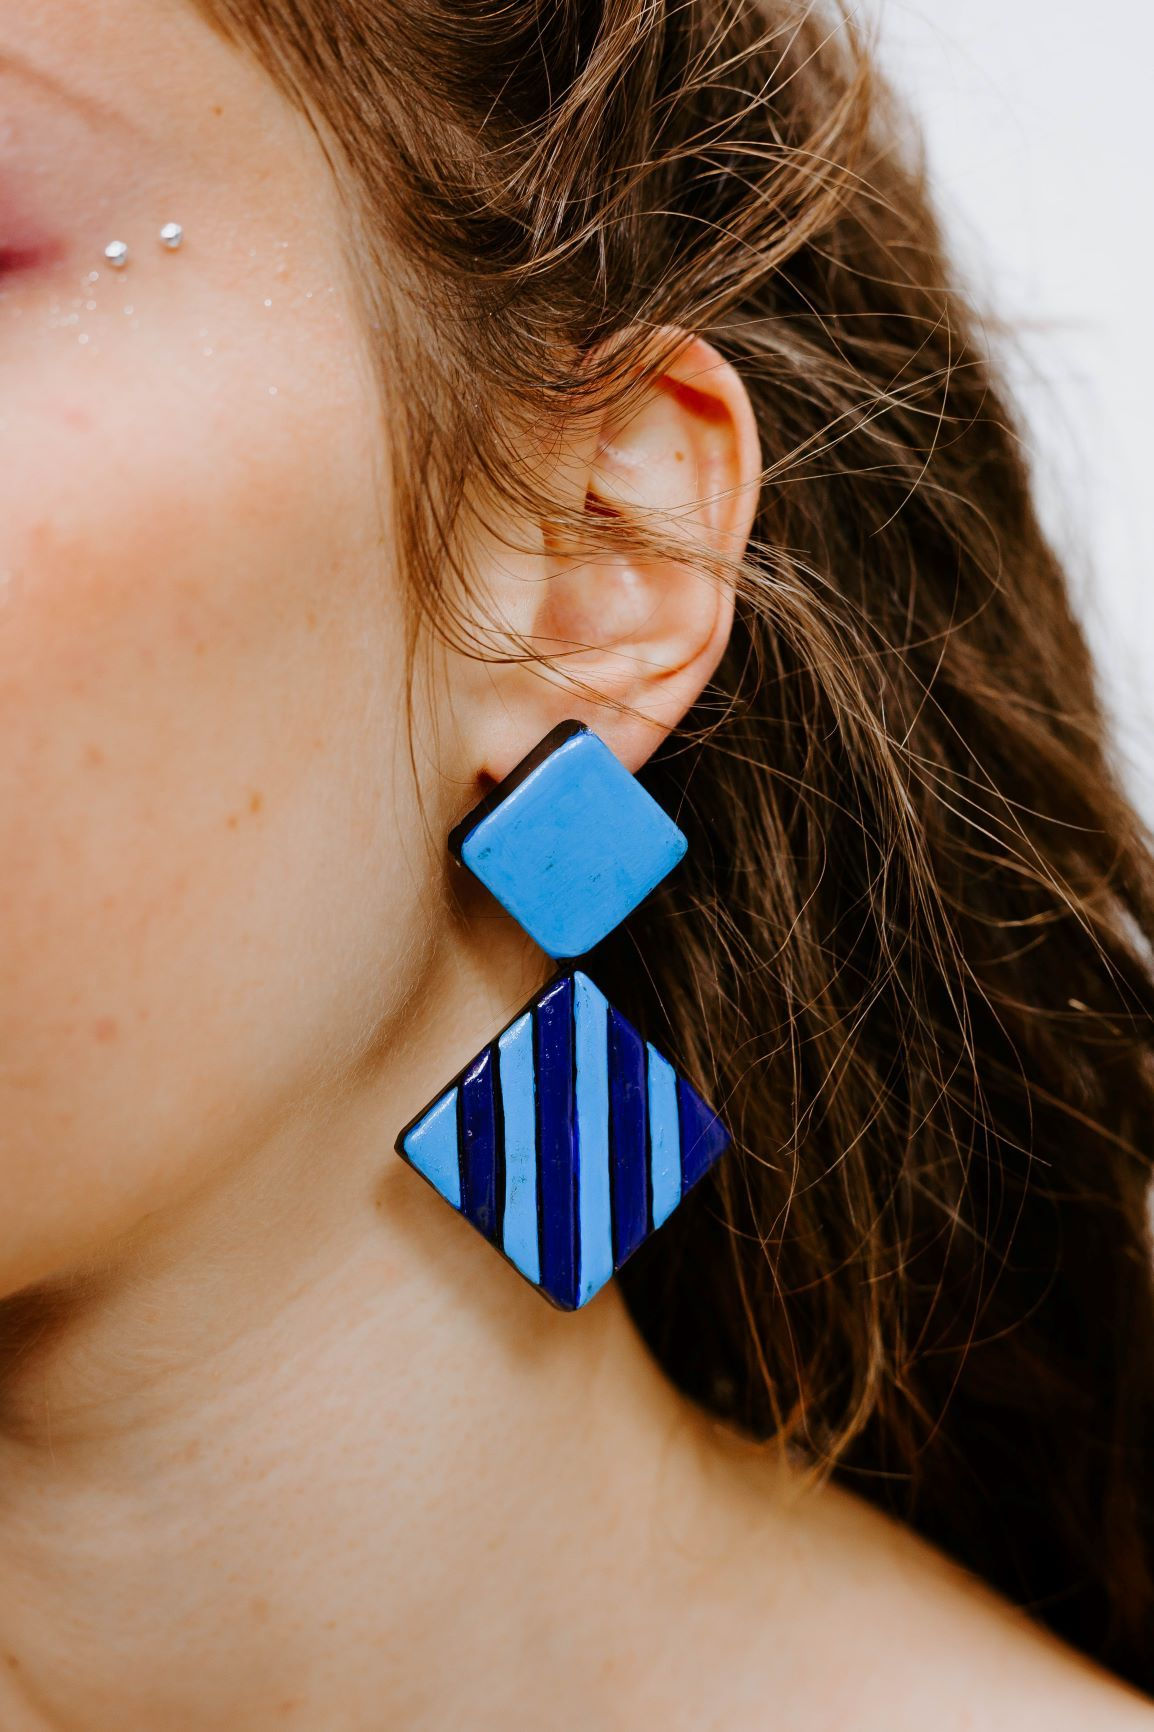 Pop Square Bleu - Boucles d'oreilles - Azaadi, la mode responsable accessible